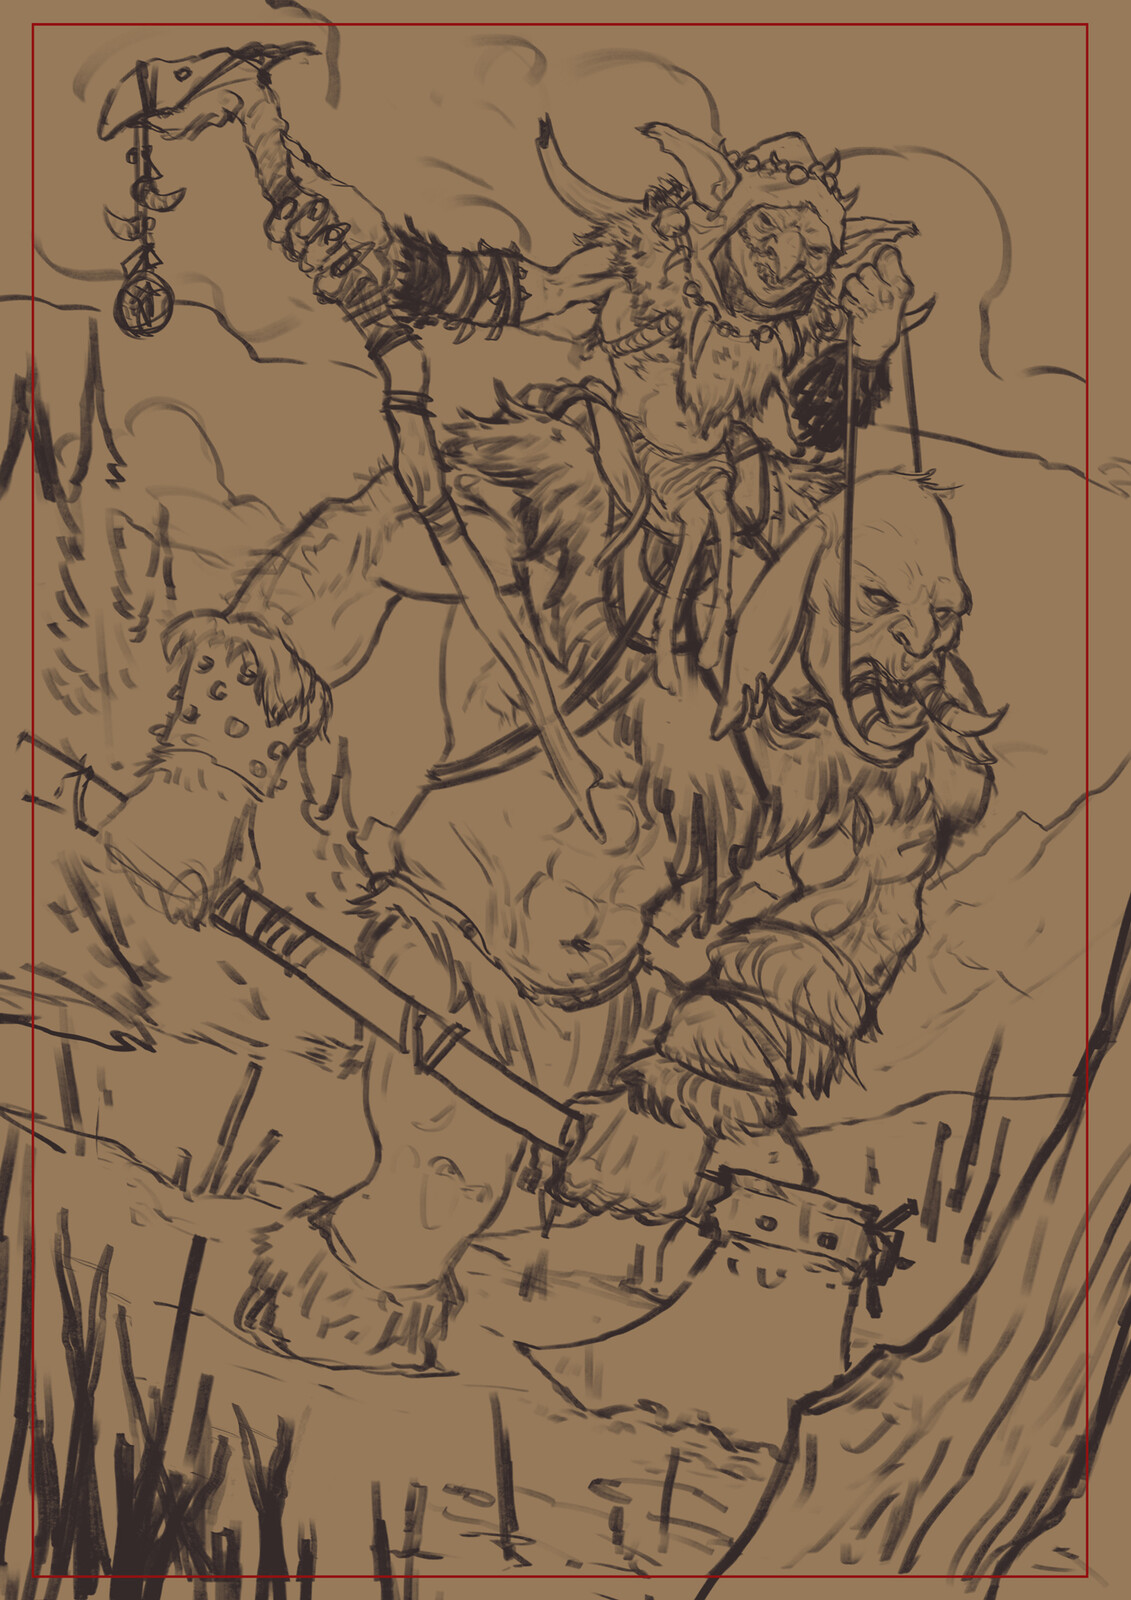 Rough lineart